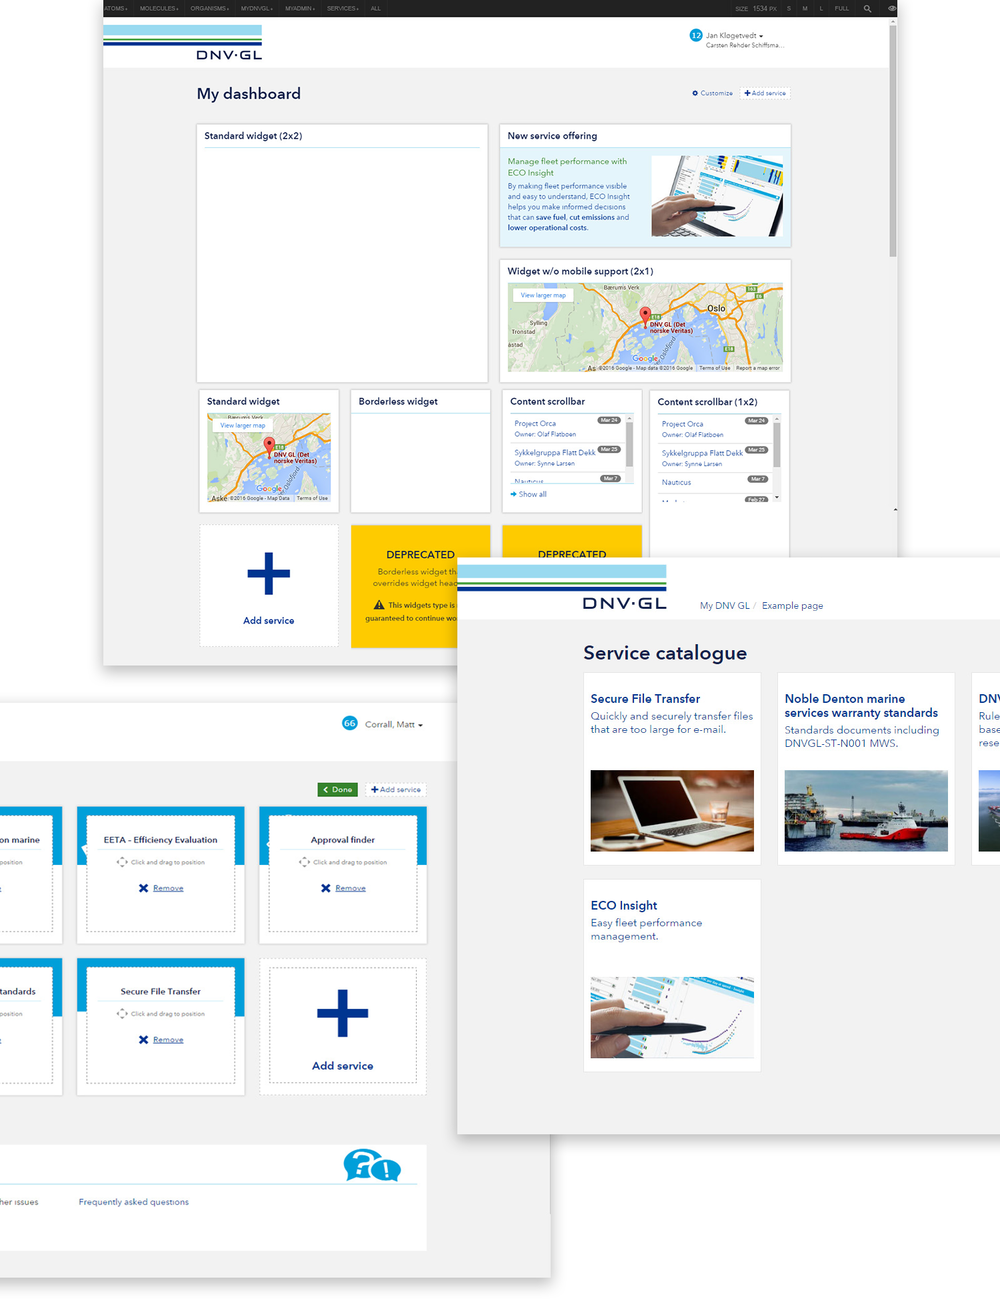 Working with the front-end developer to ensure software teams could implement widgets correctly, we developed a pattern /style guide to encourage consistent design. We considered and included content to show the on-boarding journey, through registering for services, assigning them to and customising the dashboard area